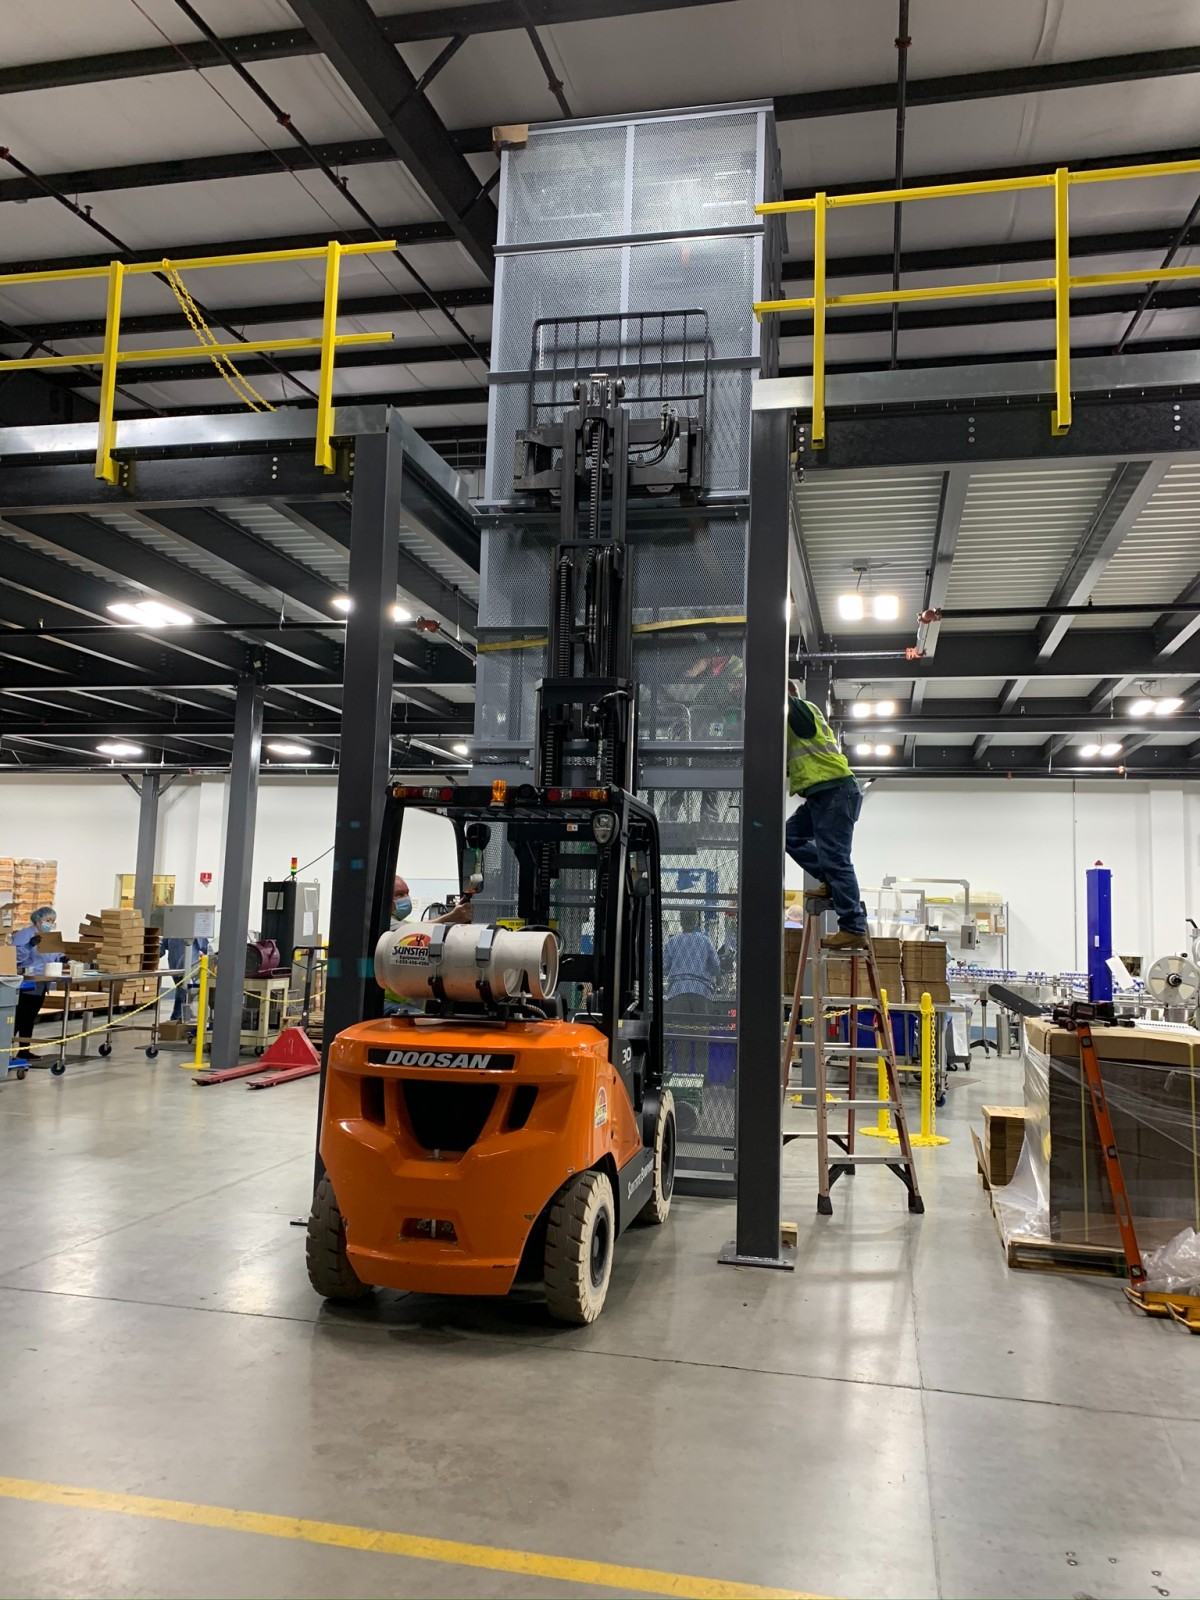 mezzanine conveyor construction using electric forklift